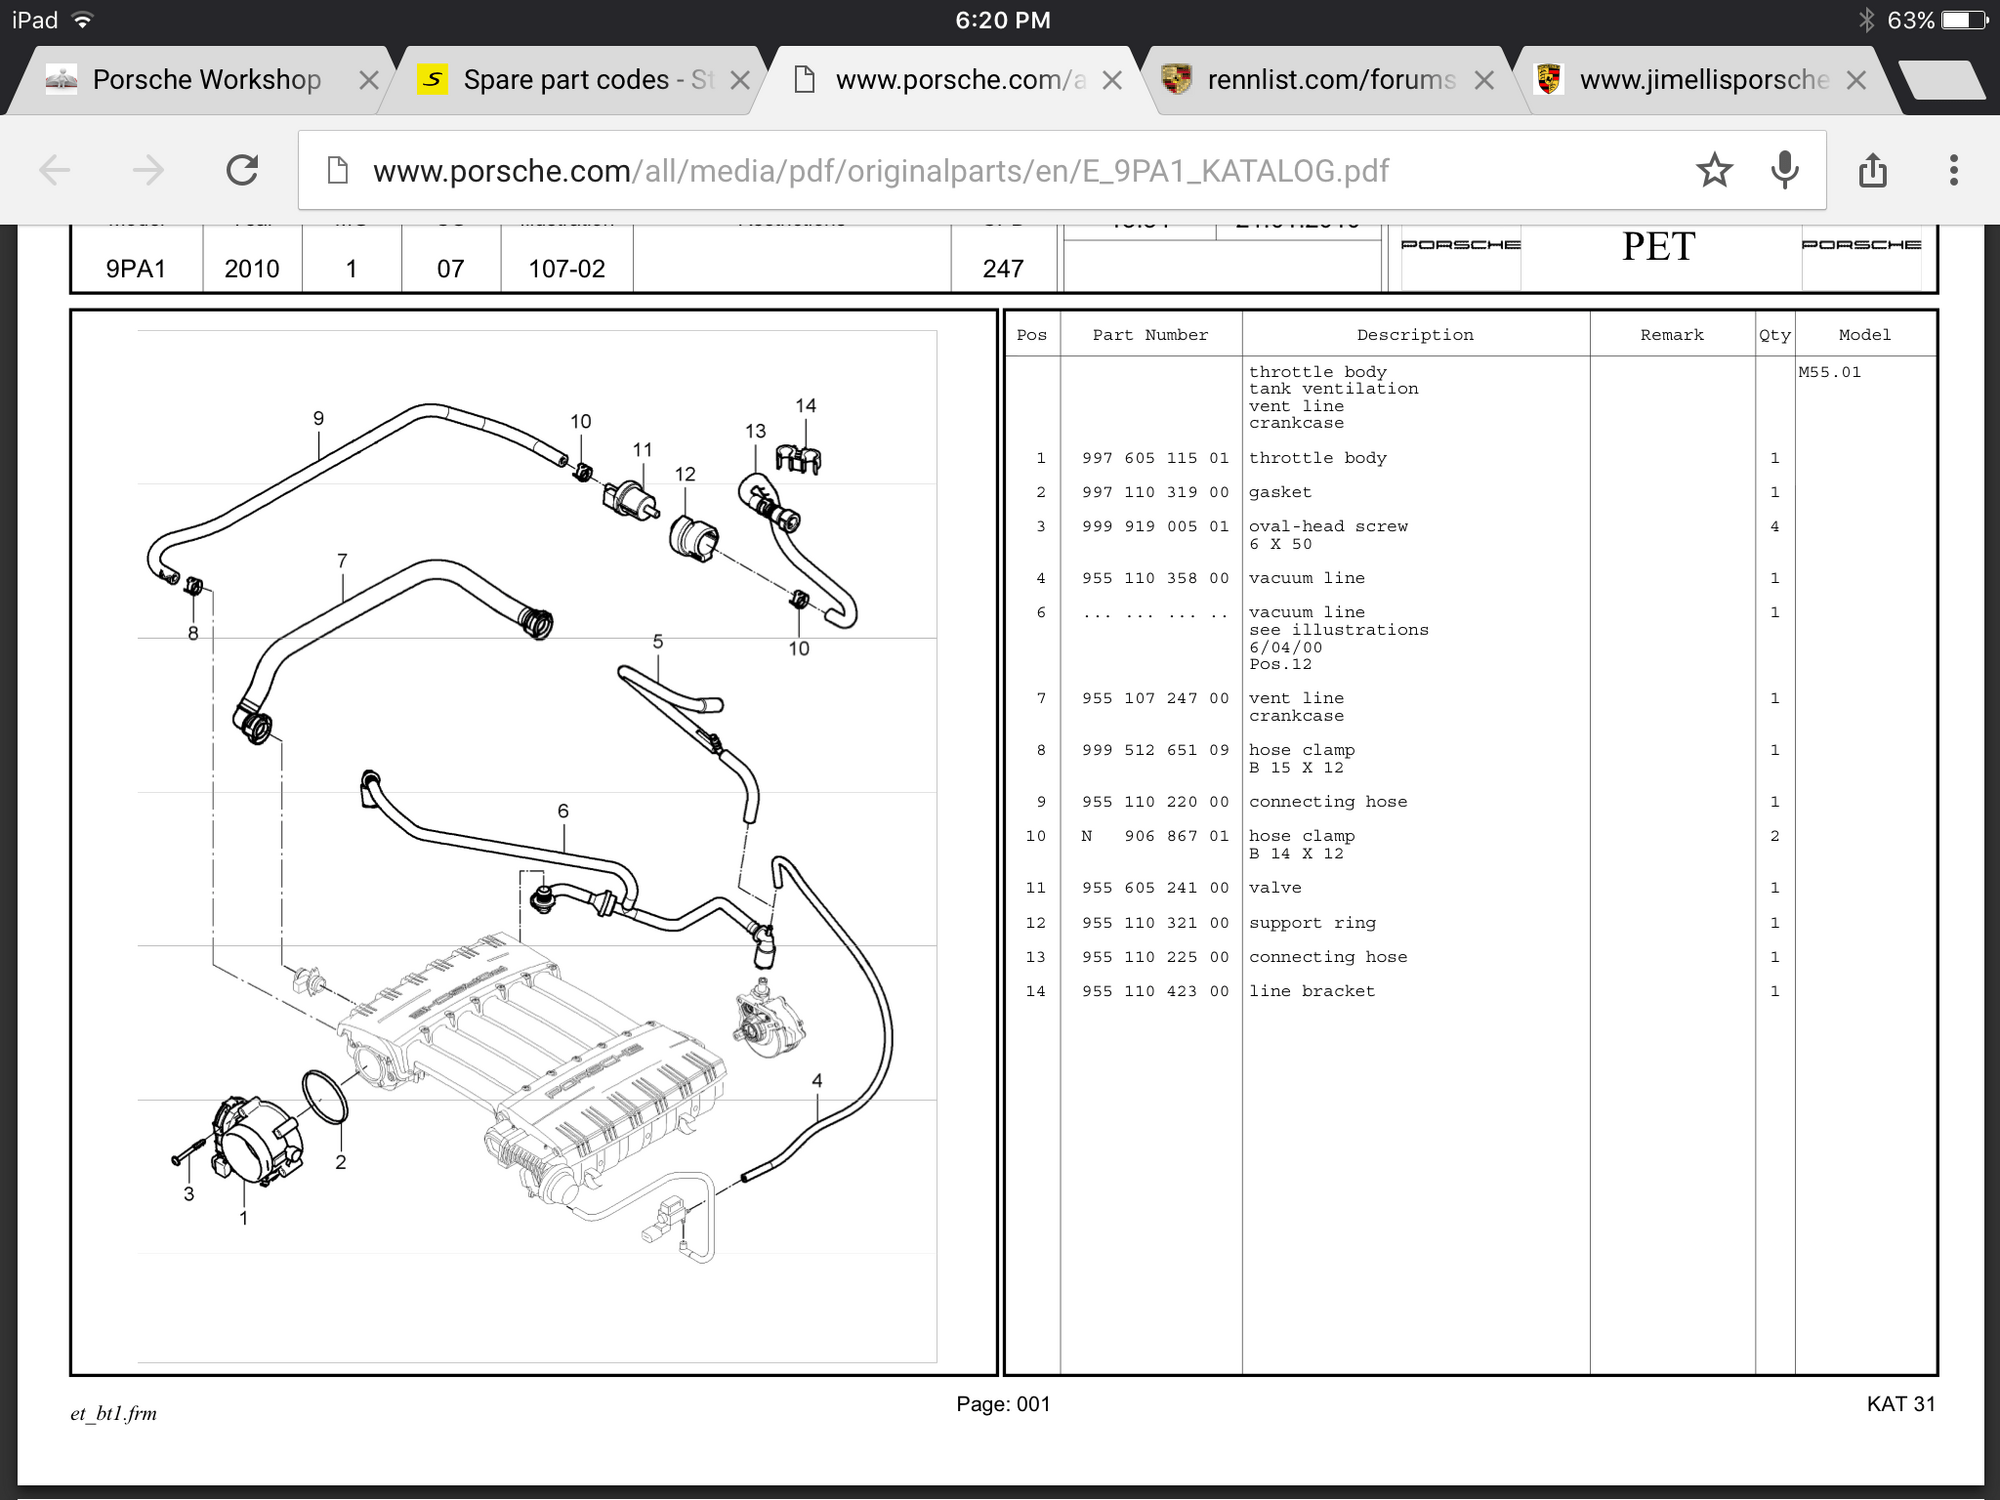 Help Needed With A Part Number